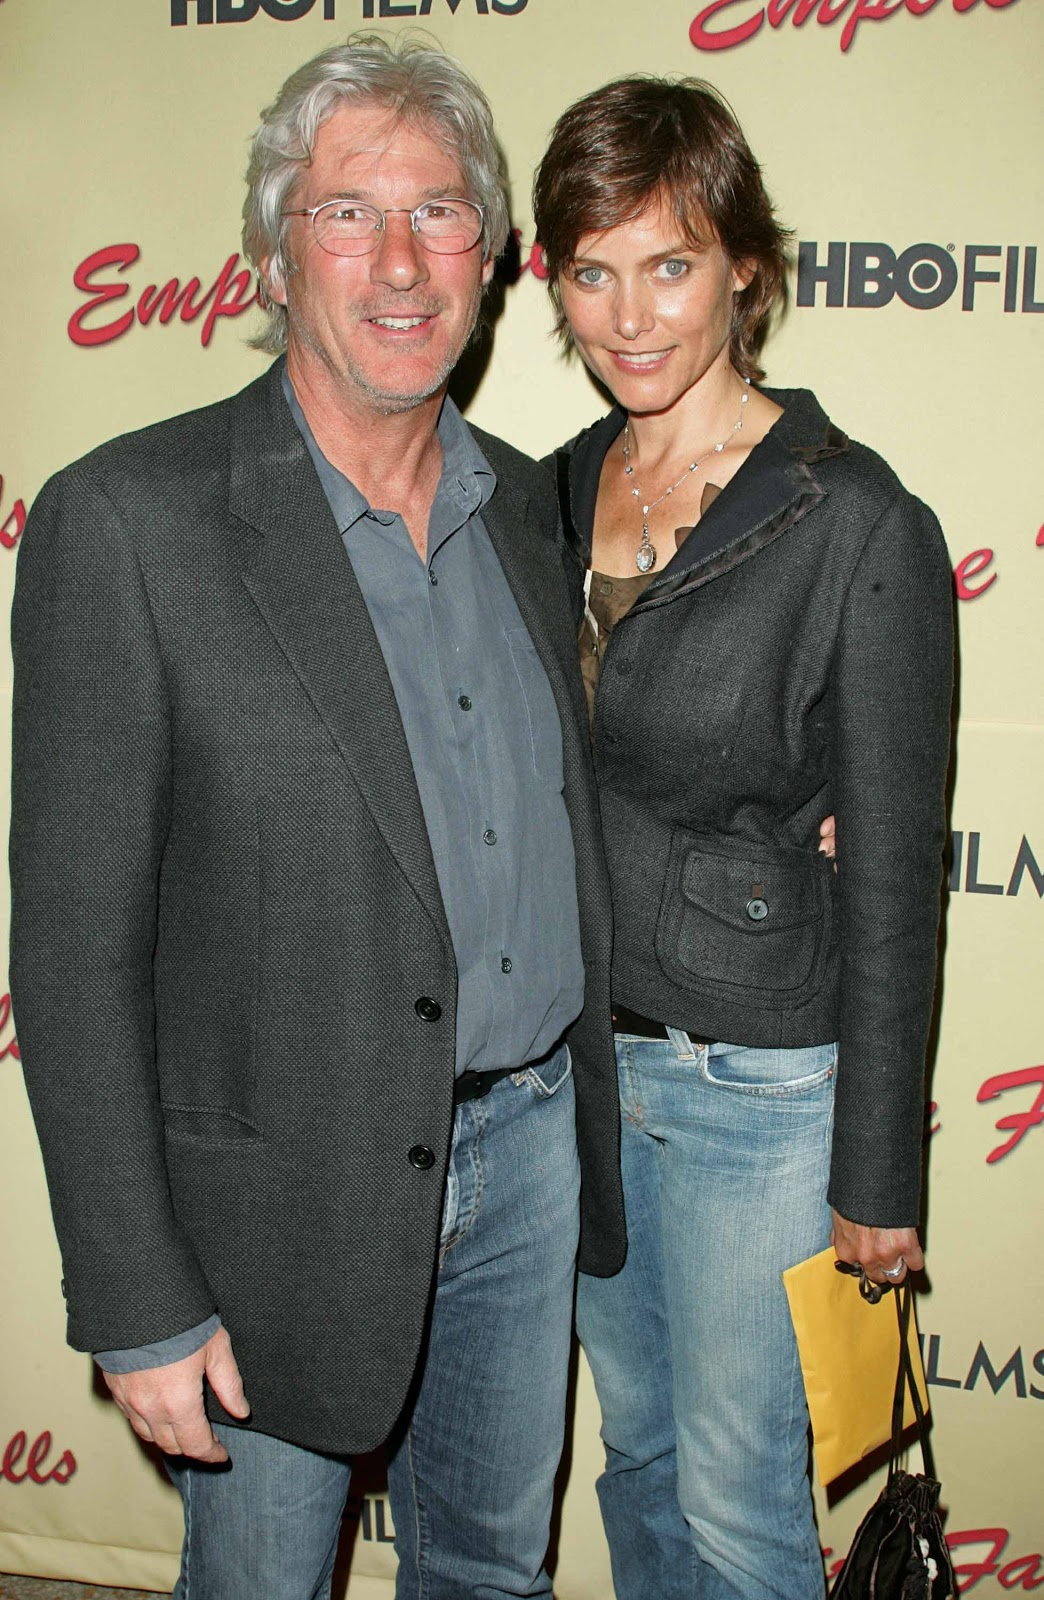 http://3.bp.blogspot.com/-wW2B-H1CZ8Y/UMZj3XXJ2vI/AAAAAAAAmjk/dkS-Y4QAXGI/s1600/richard-gere-dating-carey-lowell.jpg